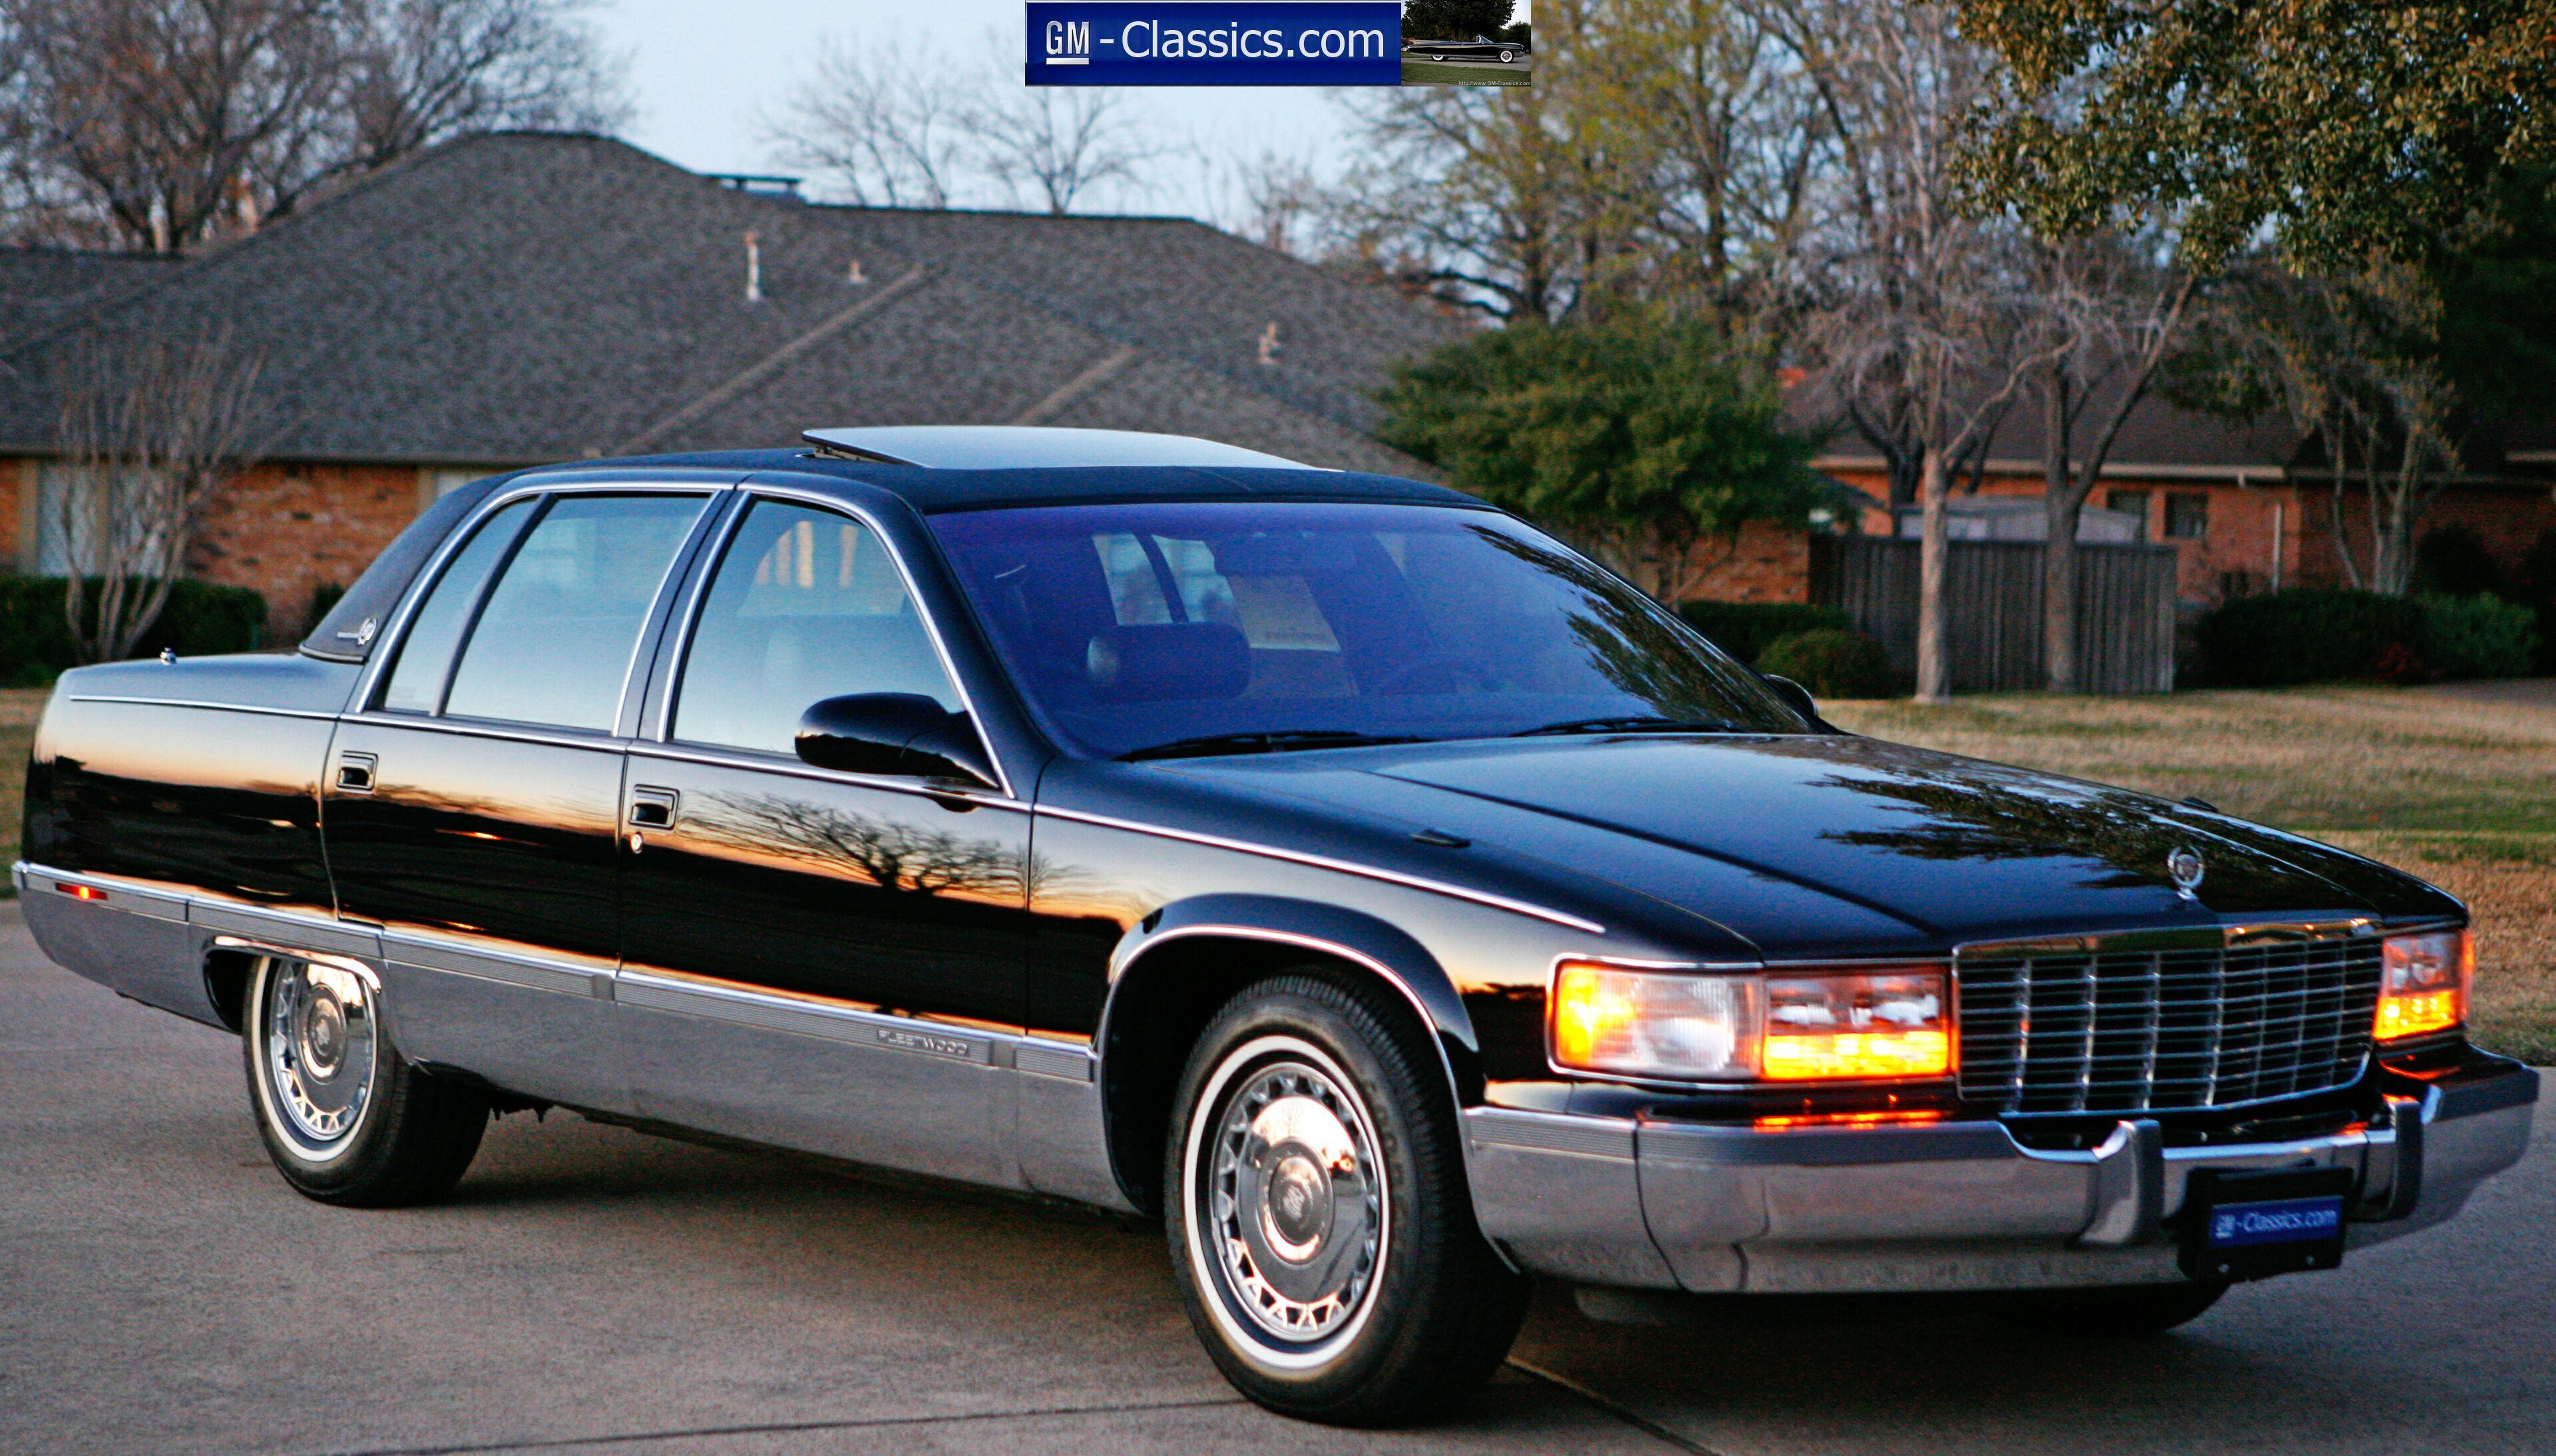 cadillac fleetwood 1996 96 brougham lt1 blow extreme any visiting thank brhm grail mcsmk8 cars